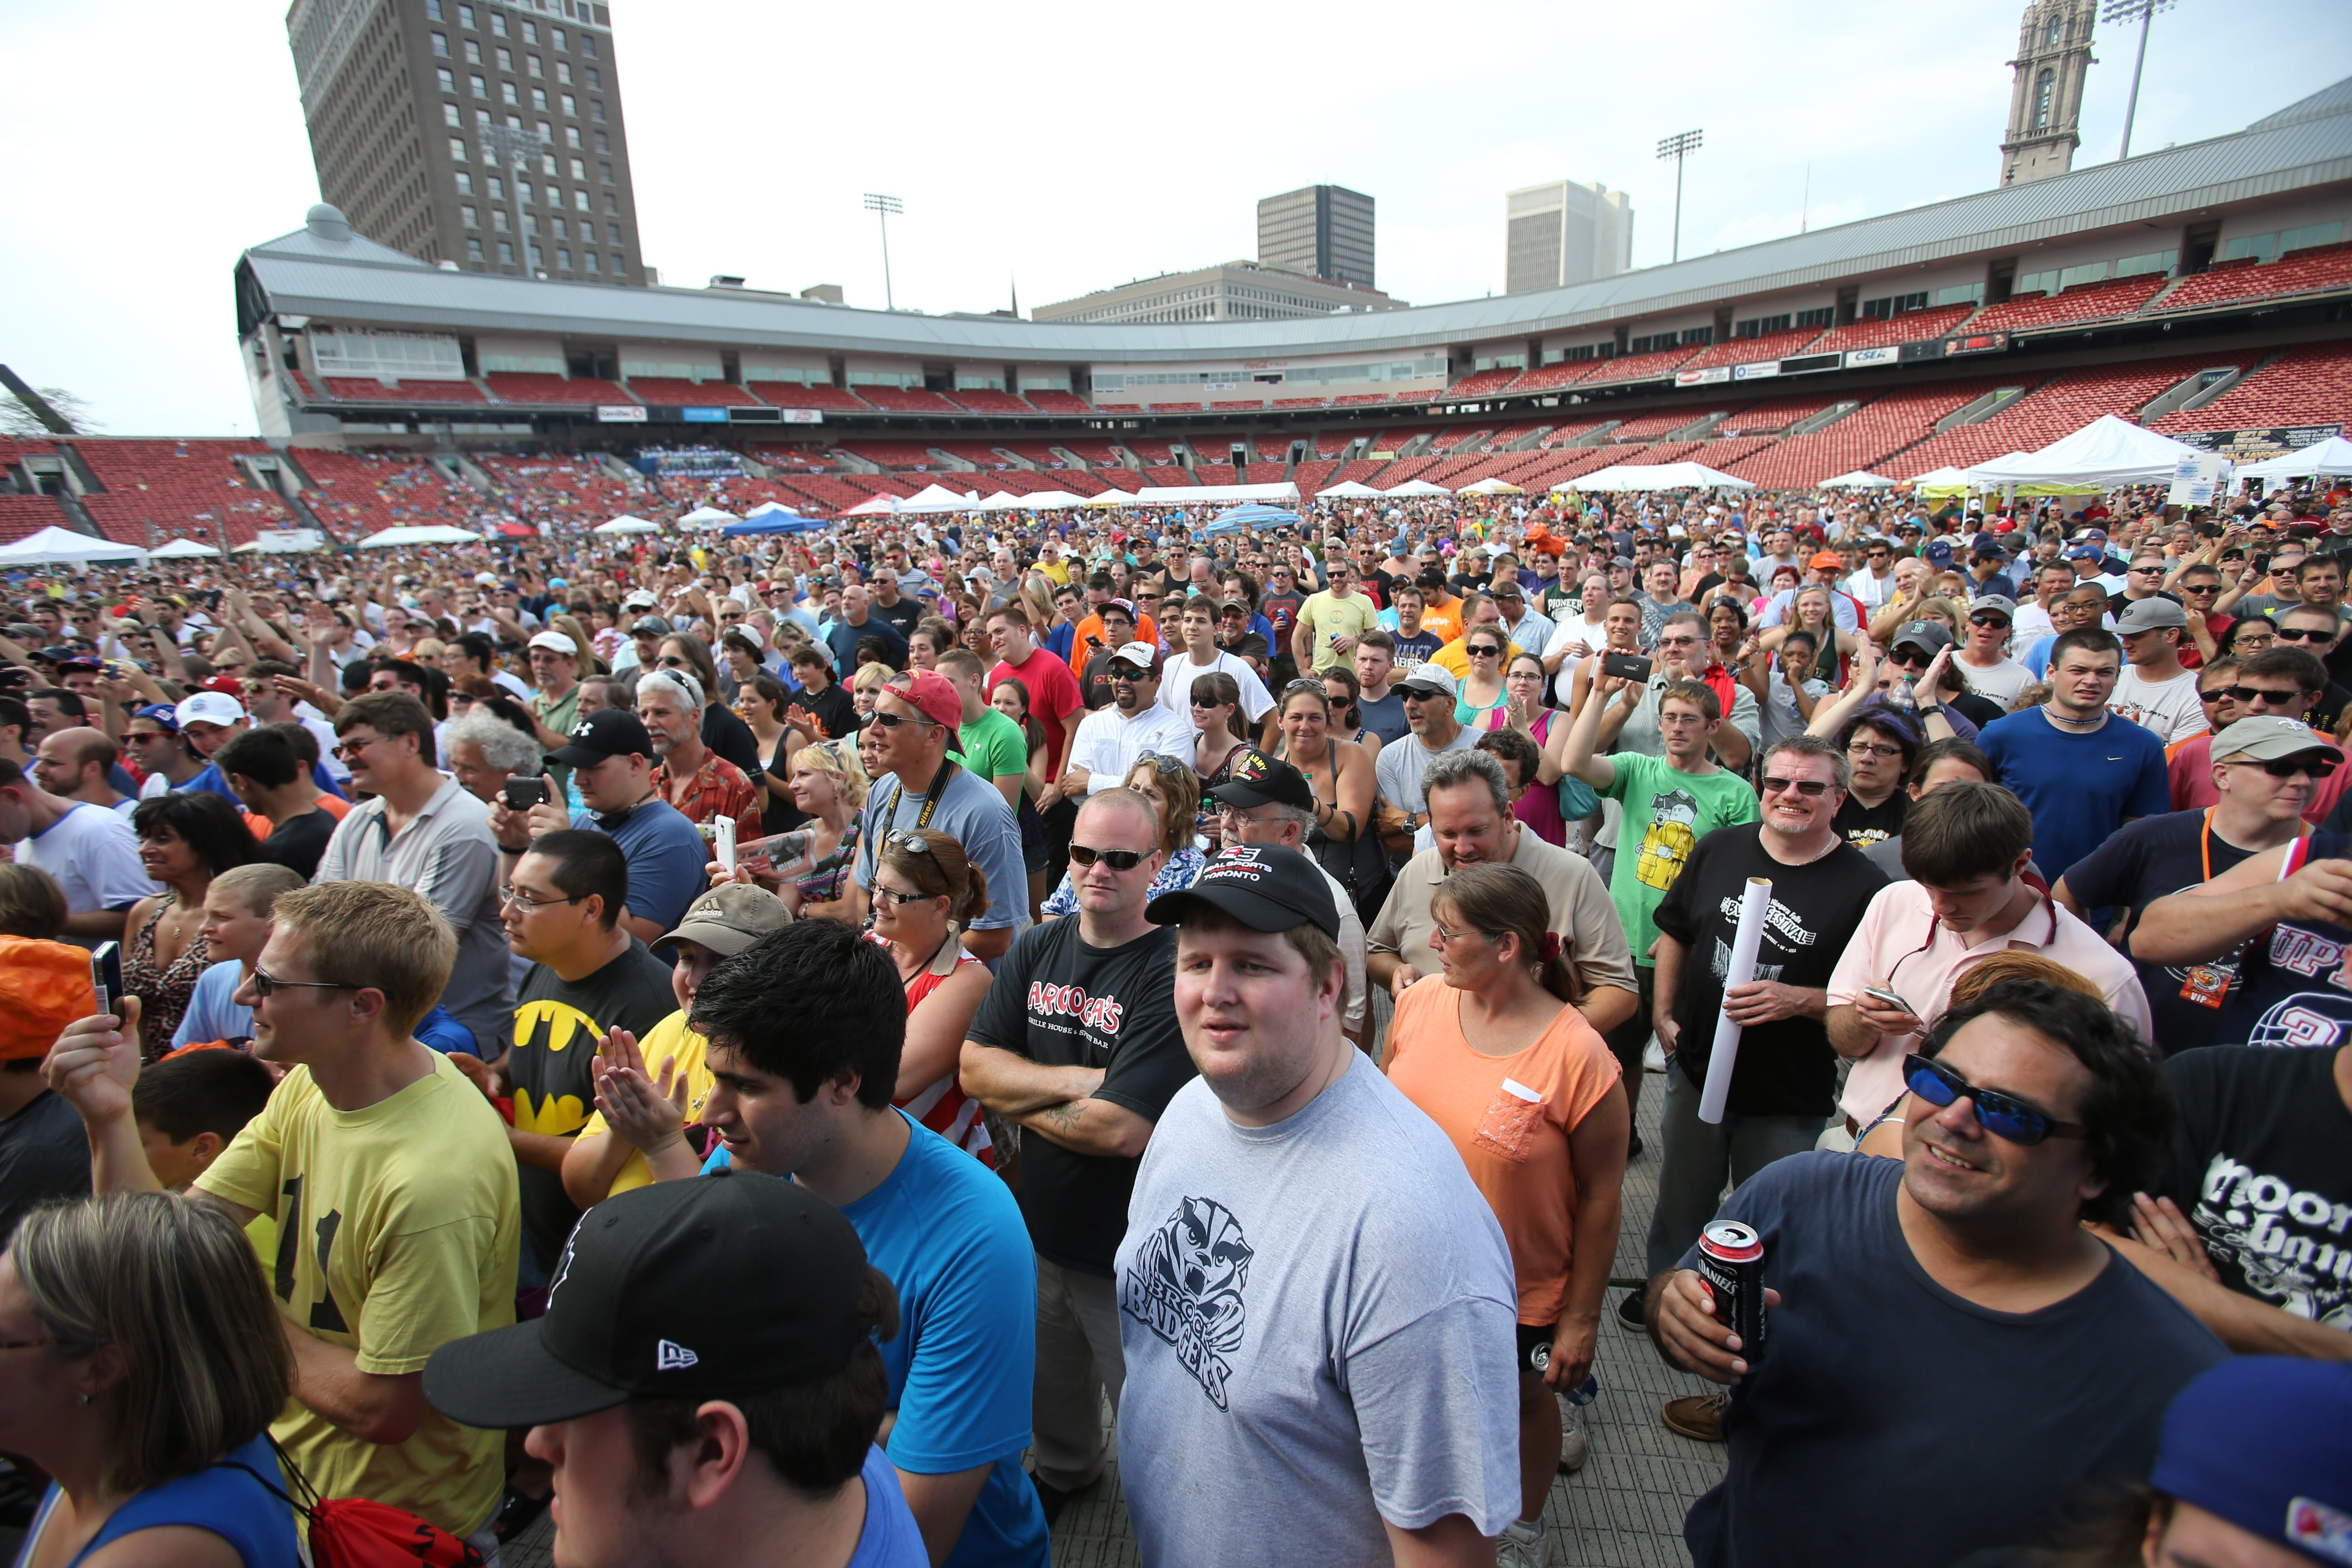 Wing lovers flock to Coca-Cola Field every year for the National Buffalo Wing Festival.